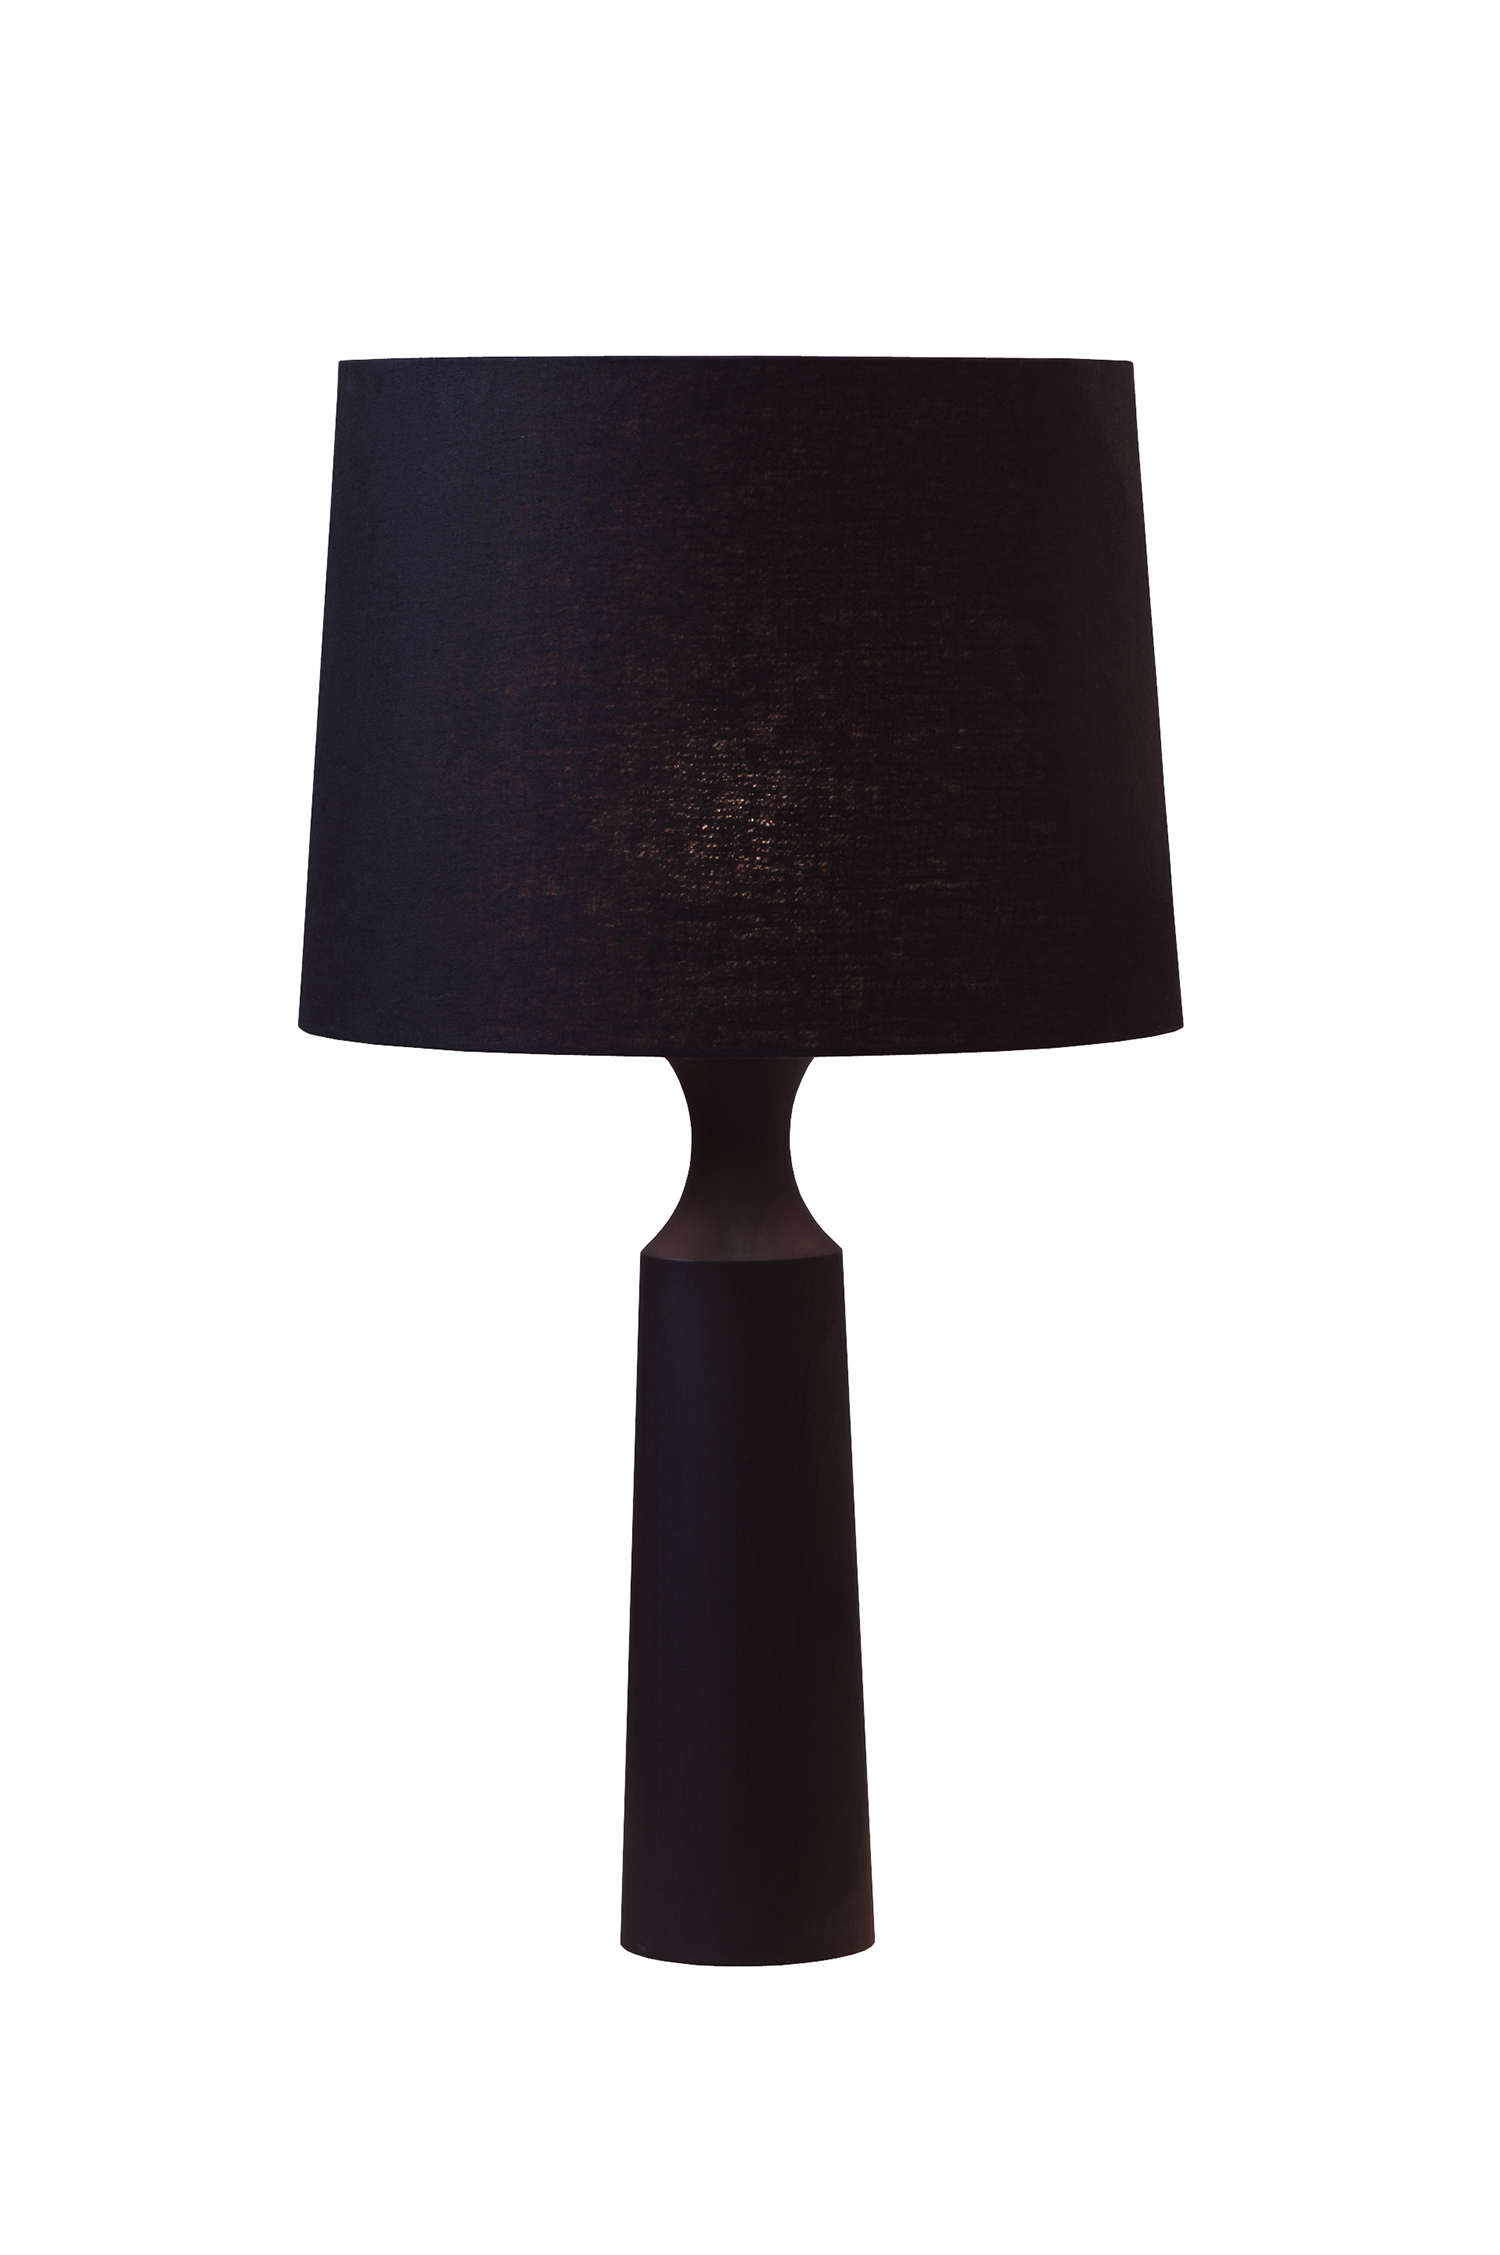 dark stained tulipwood lamp with black woven flex covering